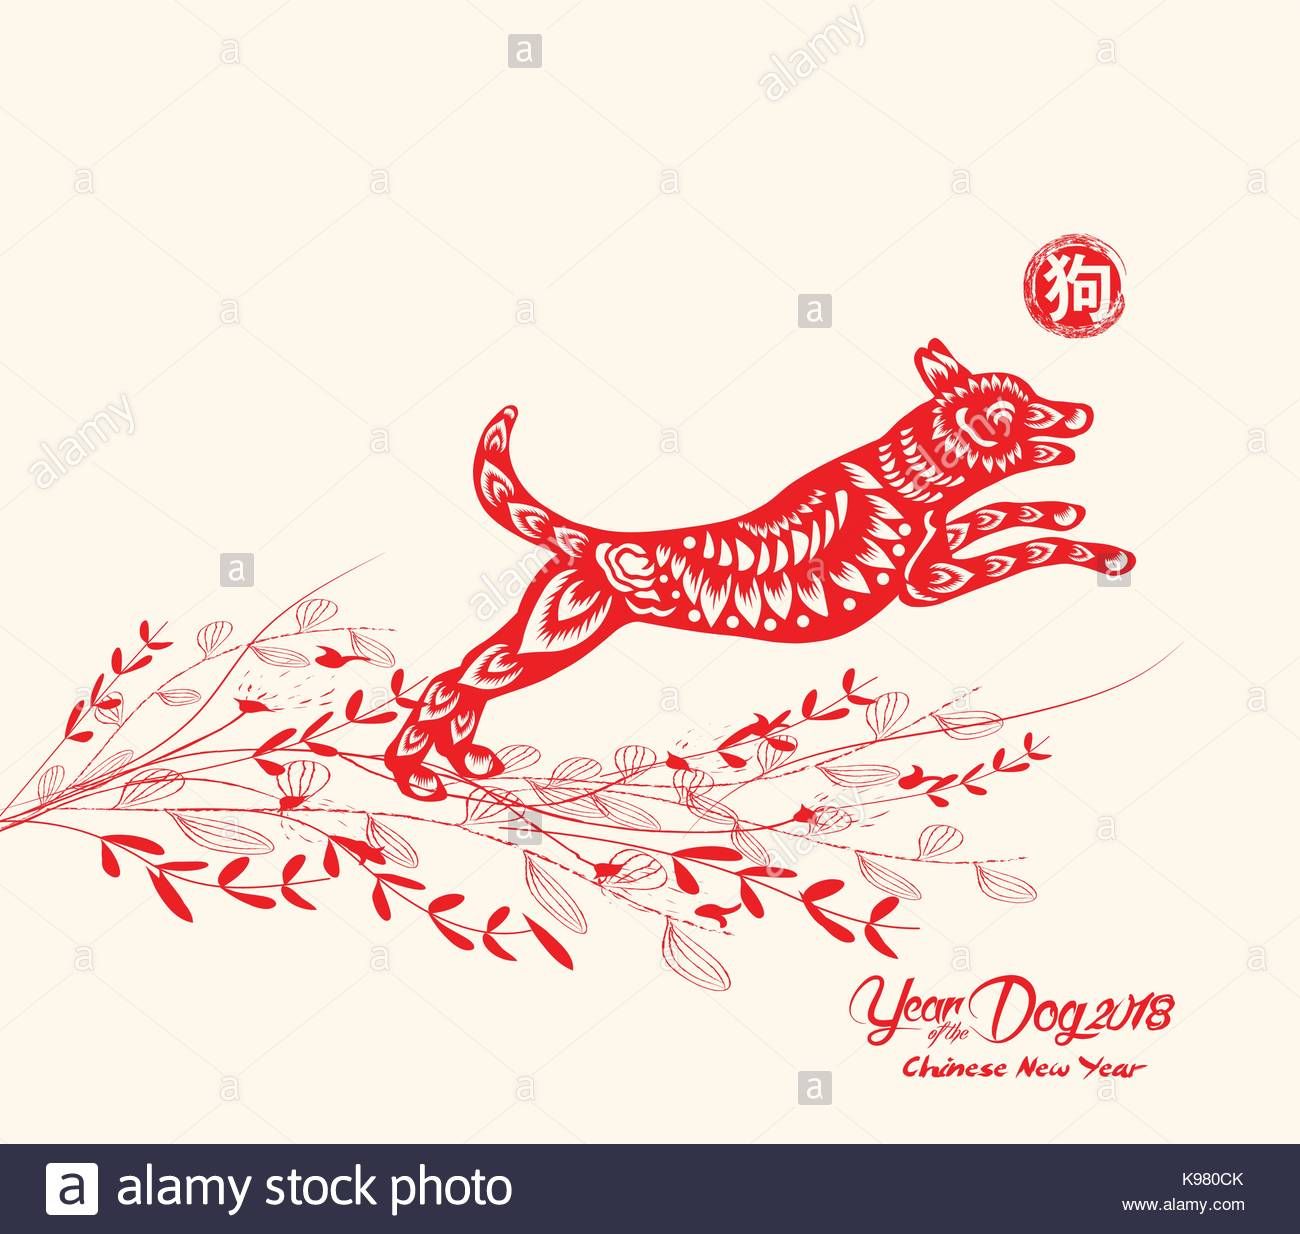 1300x1234 Chinese New Year With Dog In Frame And Floral. Year Of The Dog